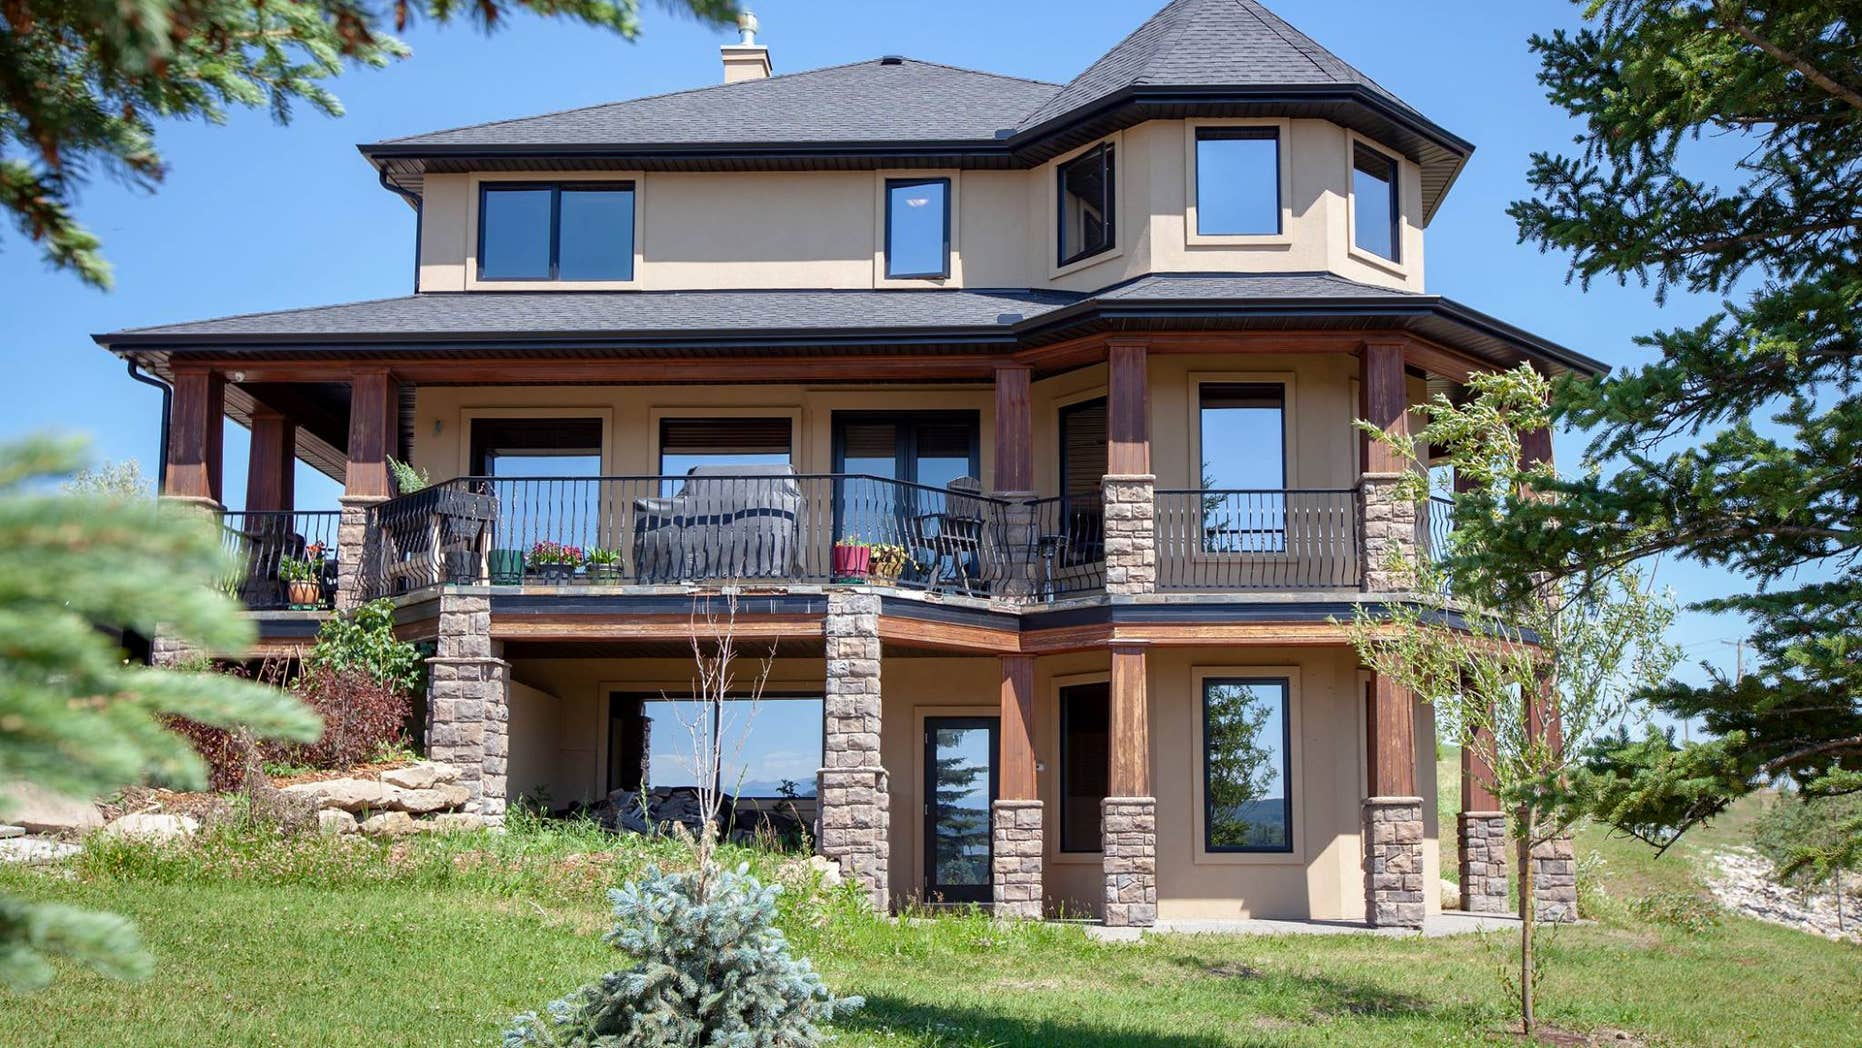 A Canadian woman announced a contest to win her $1.7 million home.